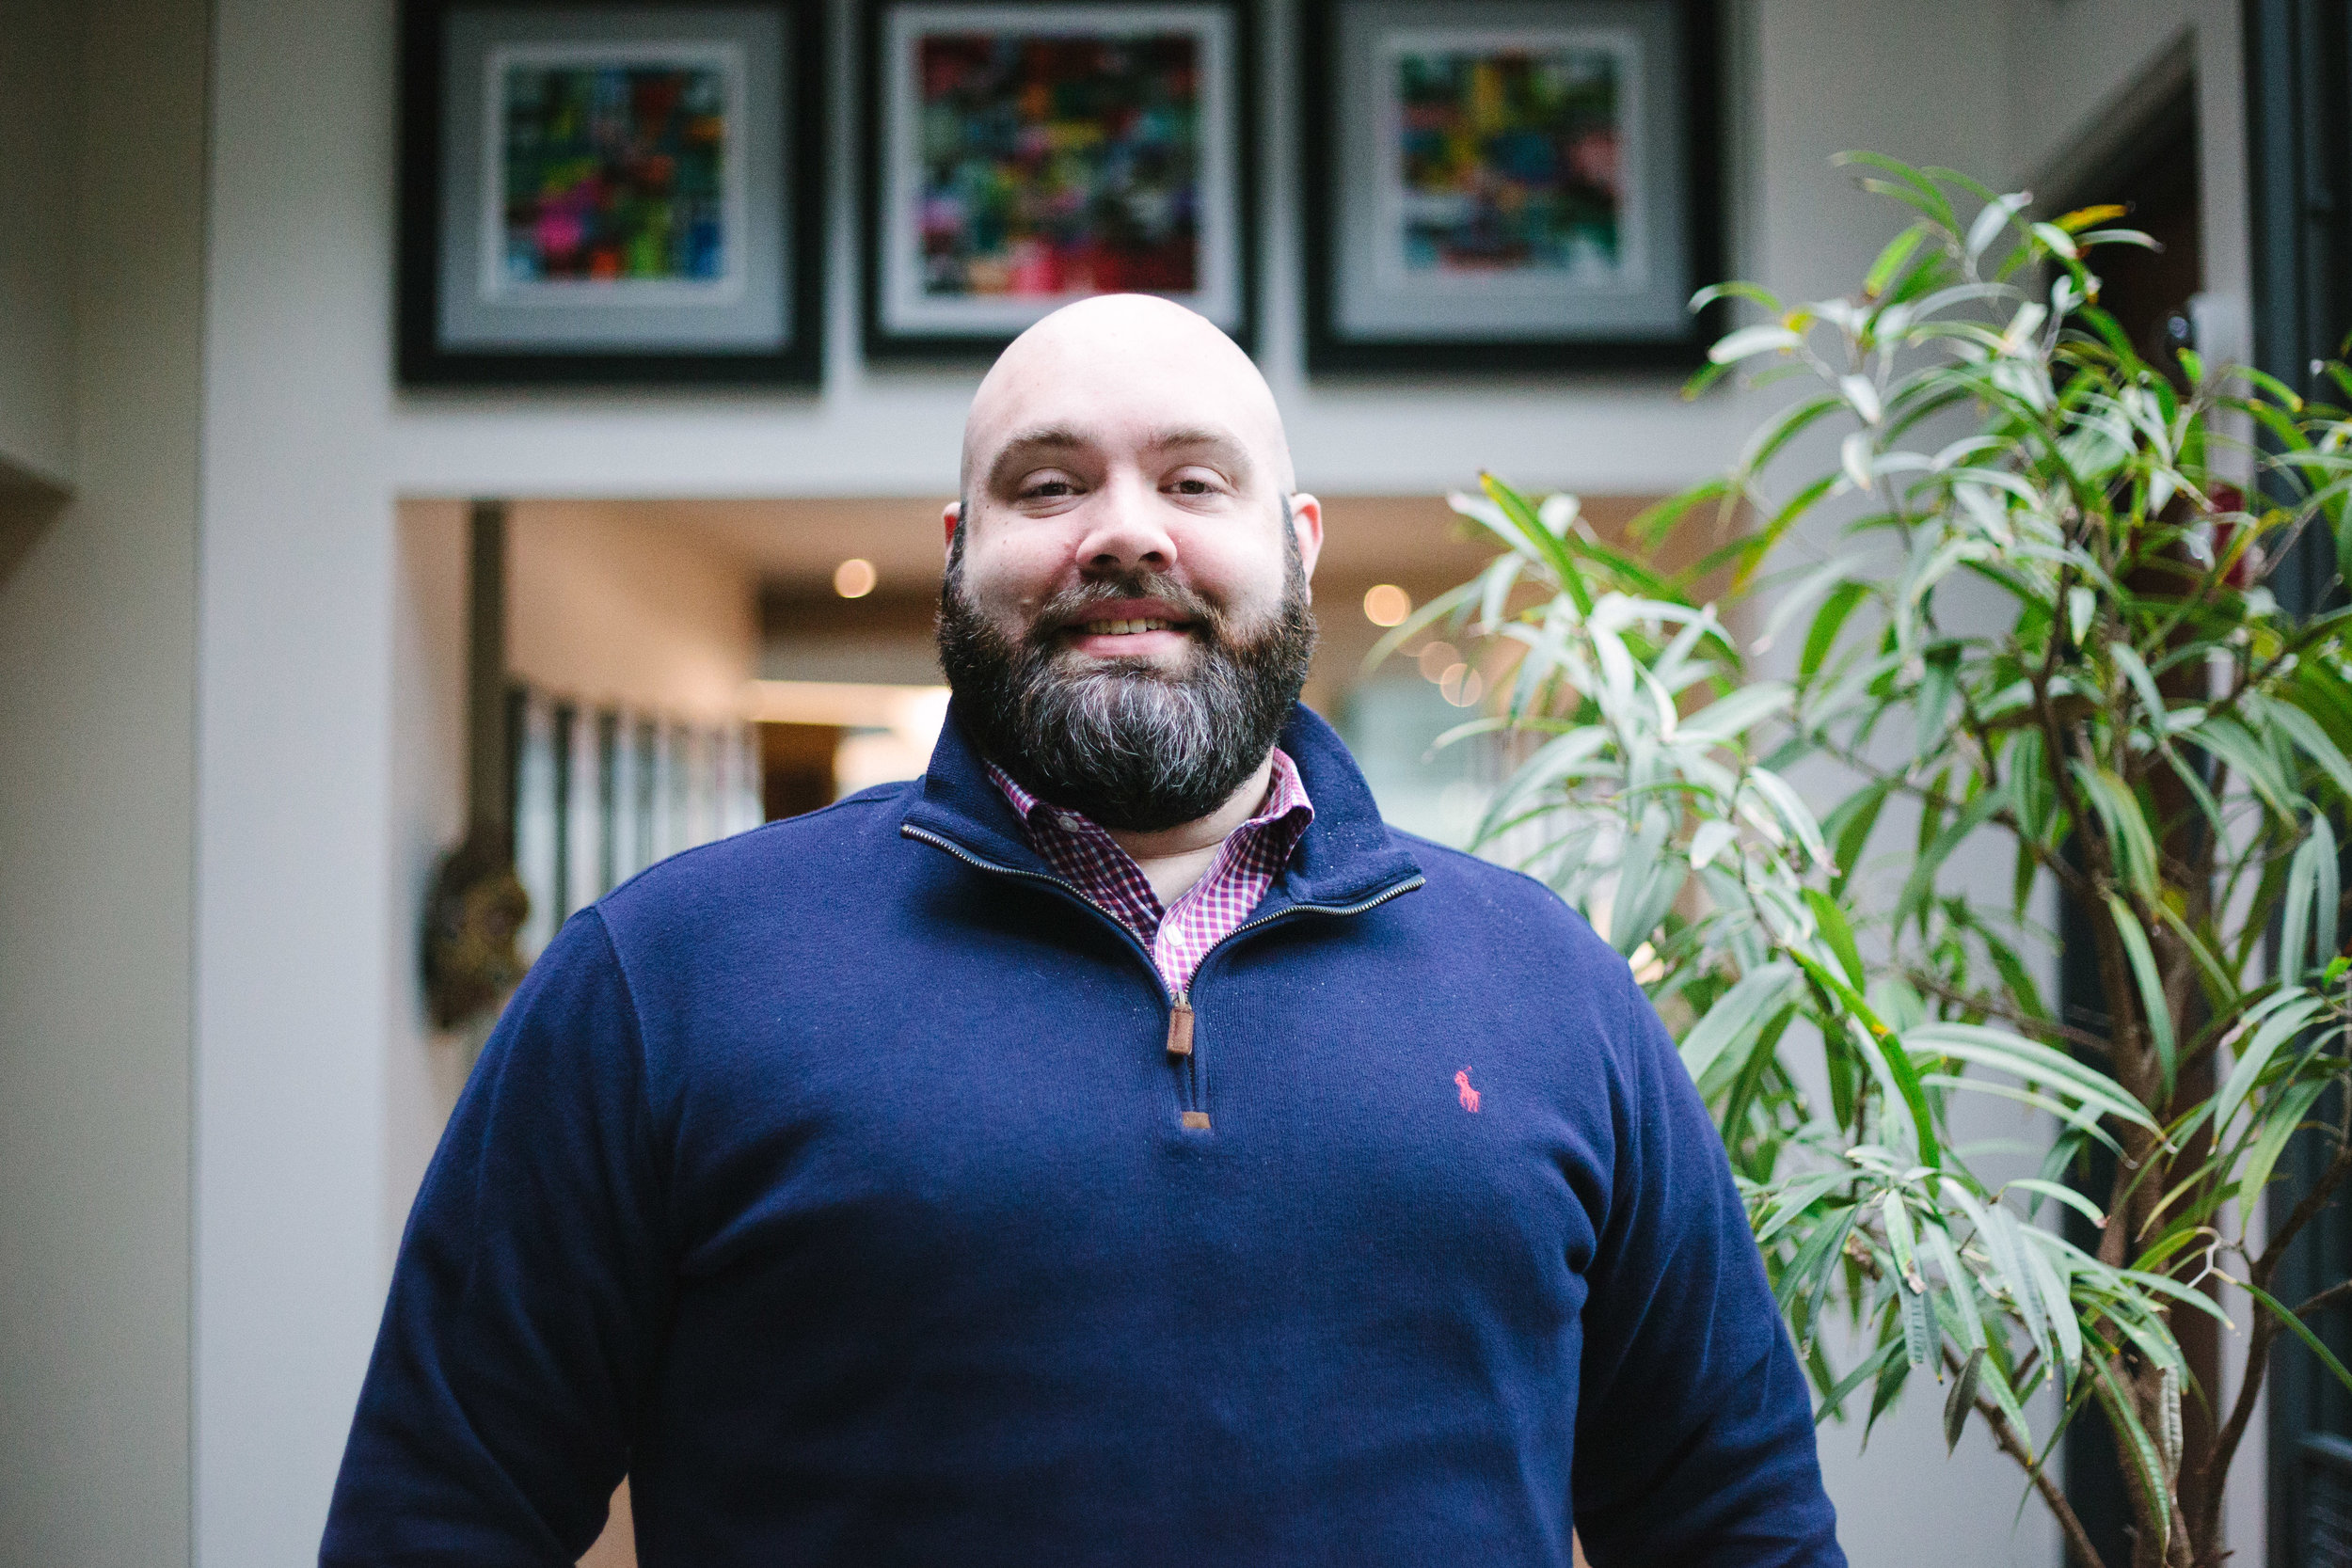 Andrew Hutson | Chief Technology Officer   Andrew is the Chief Technology Officer for Sapper. He is primarily responsible for the setting the strategic vision of technology use and designed a machine learning recommendation engine used to predict prospect behavior. Dr. Hutson is also a professor at the Mizzou where he teaches courses in Six Sigma/Lean, automation, and business intelligence.